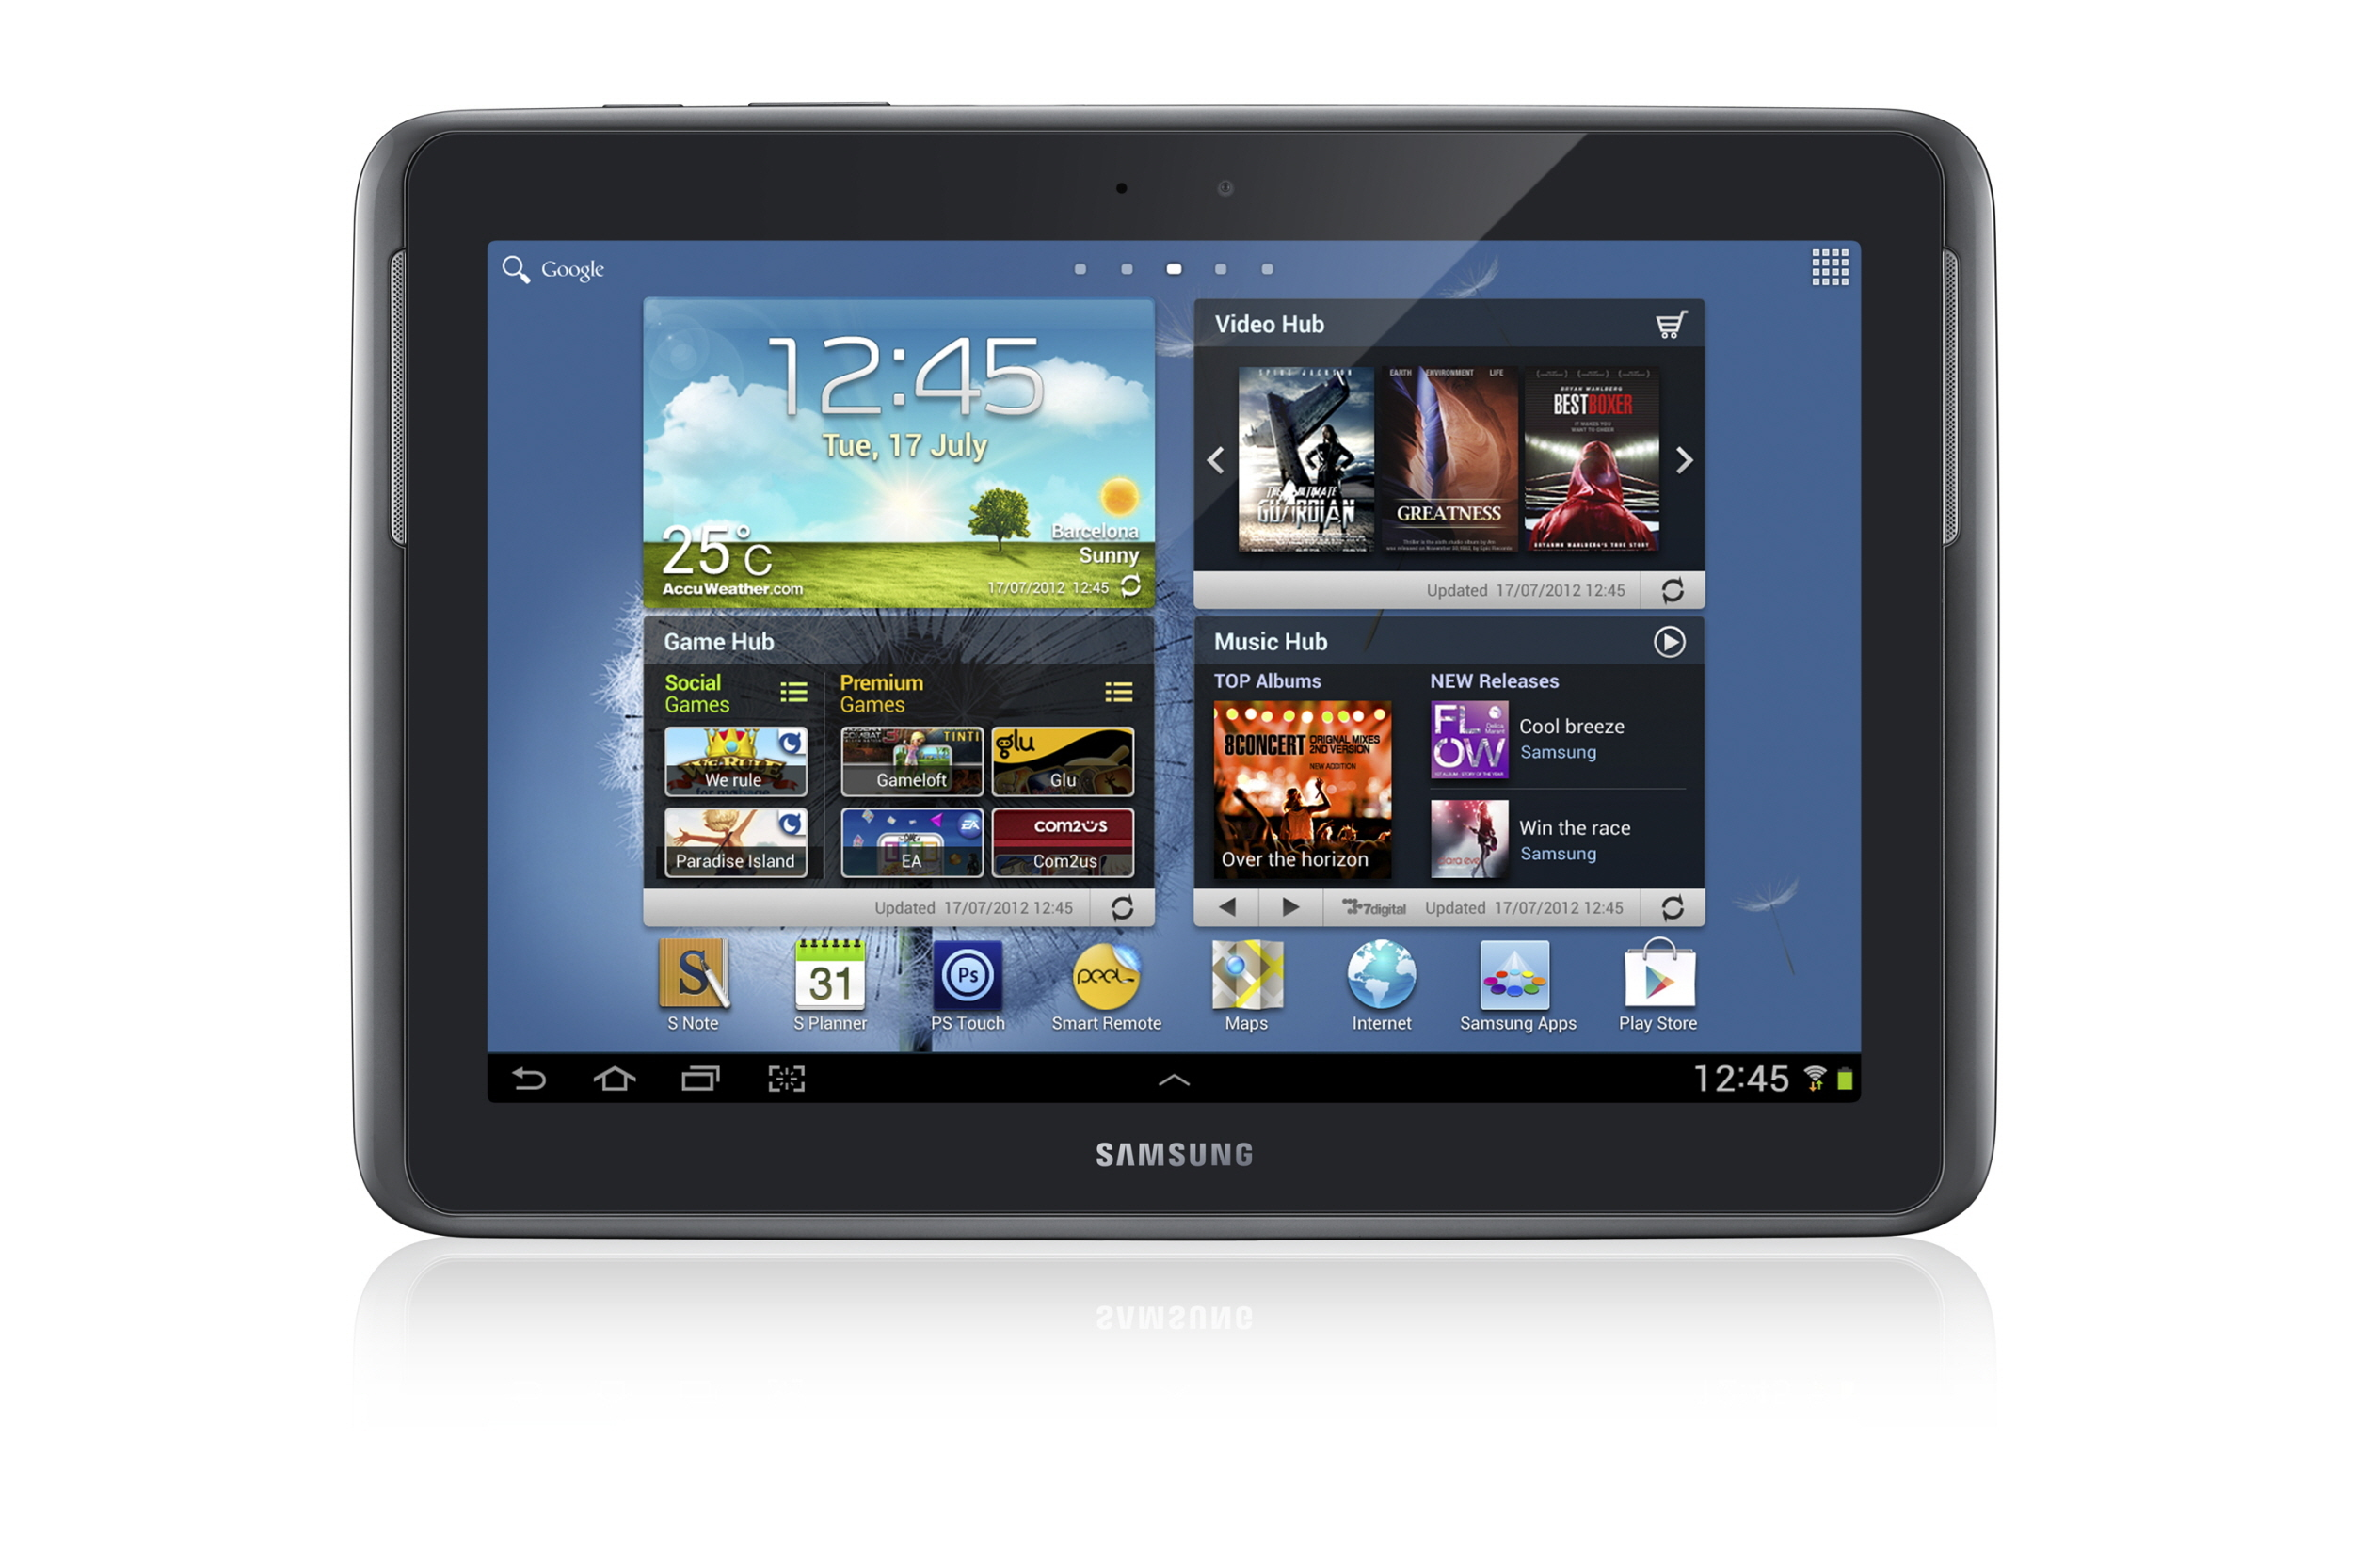 Samsung Galaxy Note 10.1 Review: The Pen Sets This Android Tablet ...